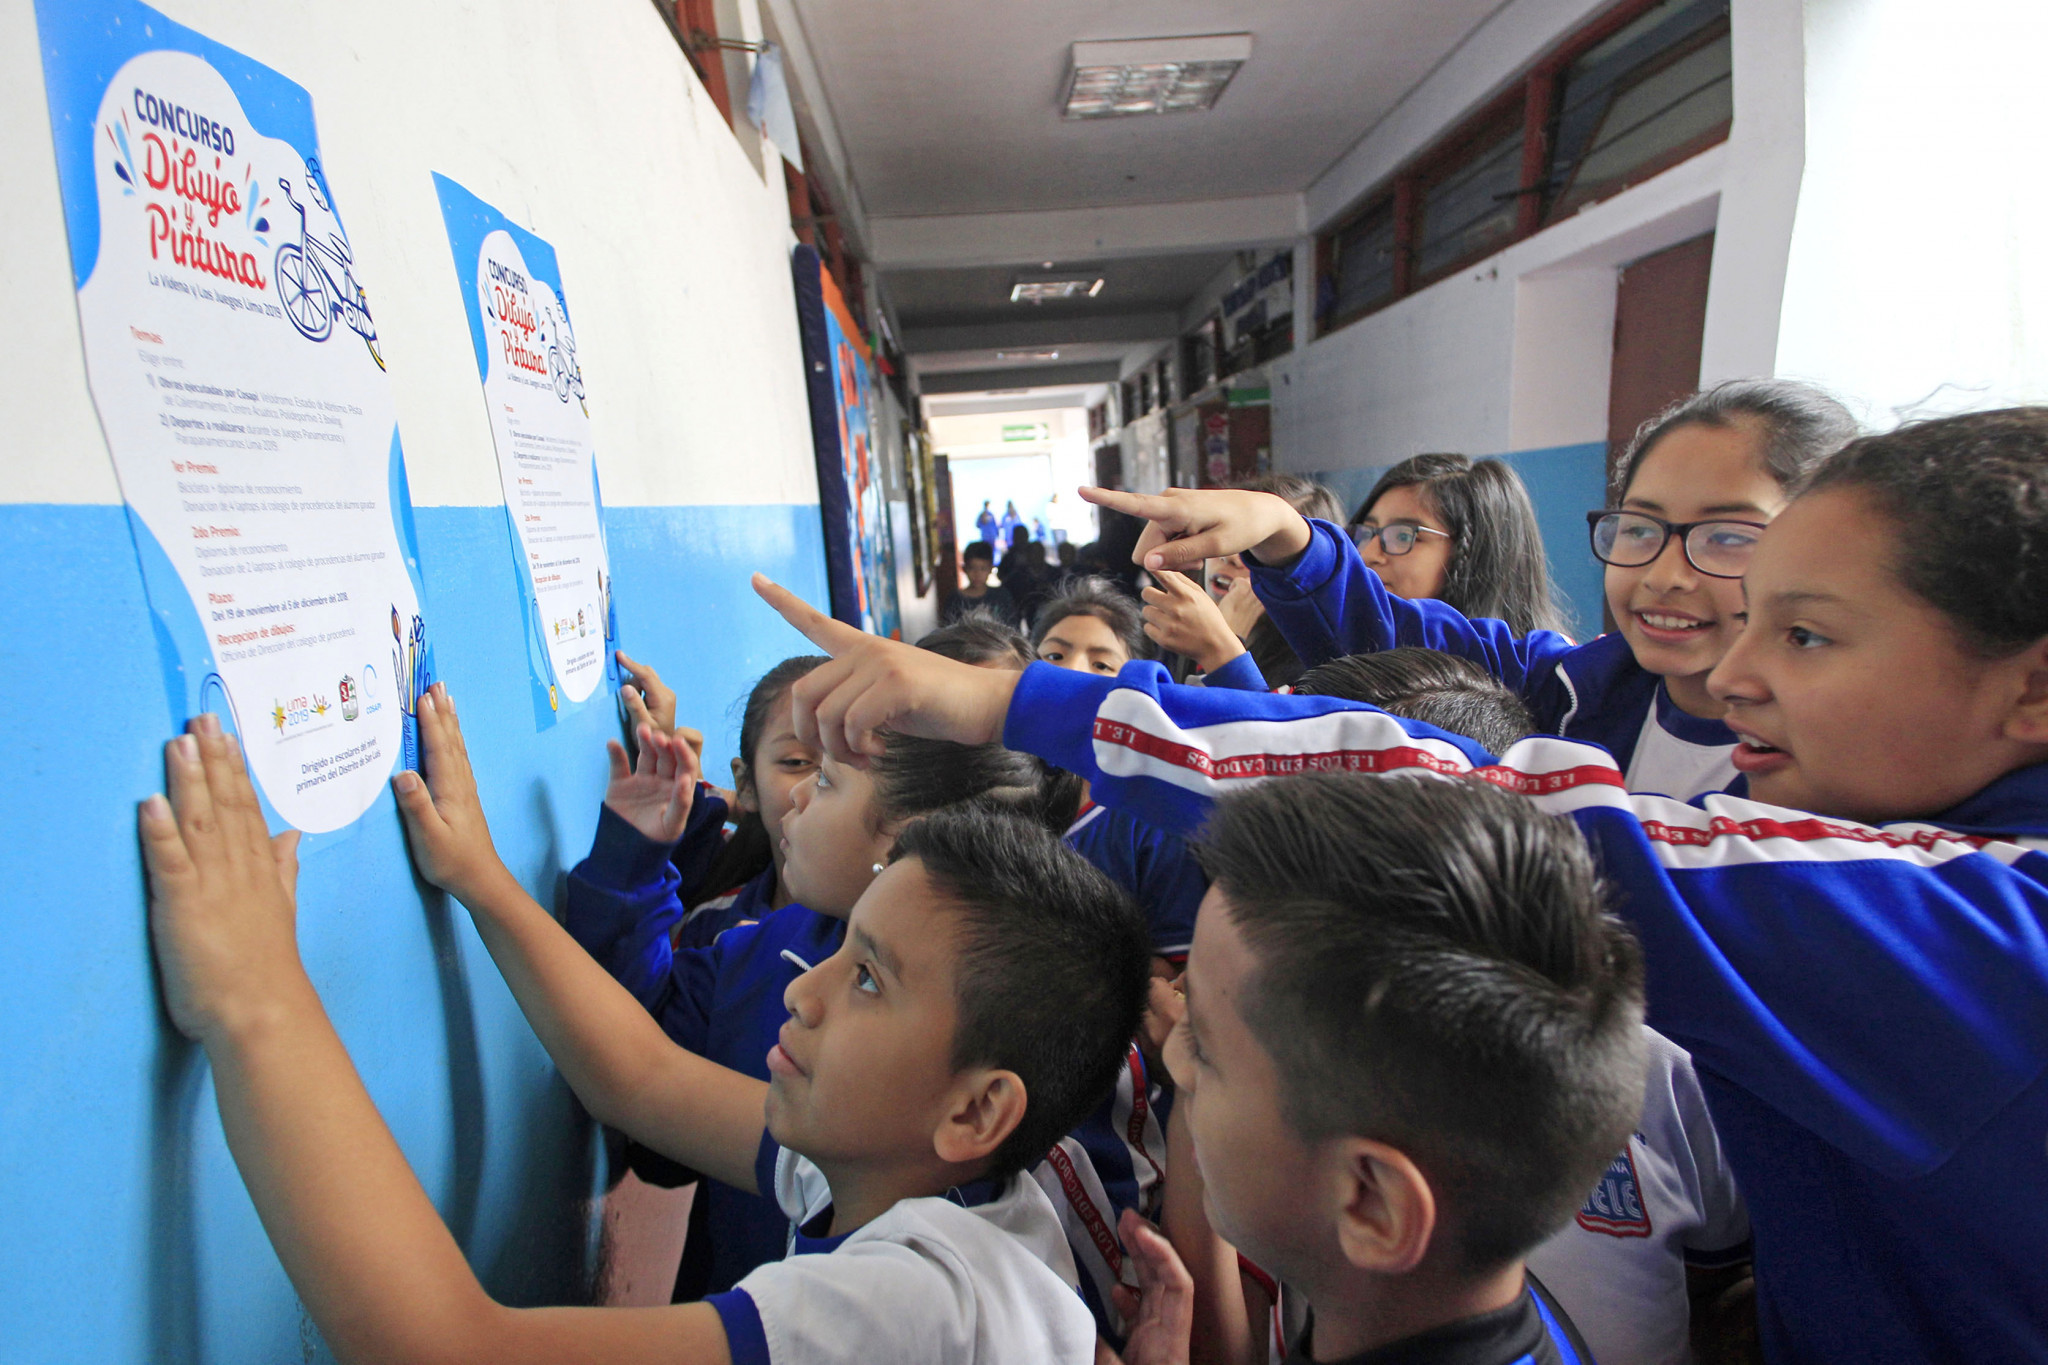 Lima 2019 launches drawing and painting competition to promote sports on Pan and Parapan American Games programmes